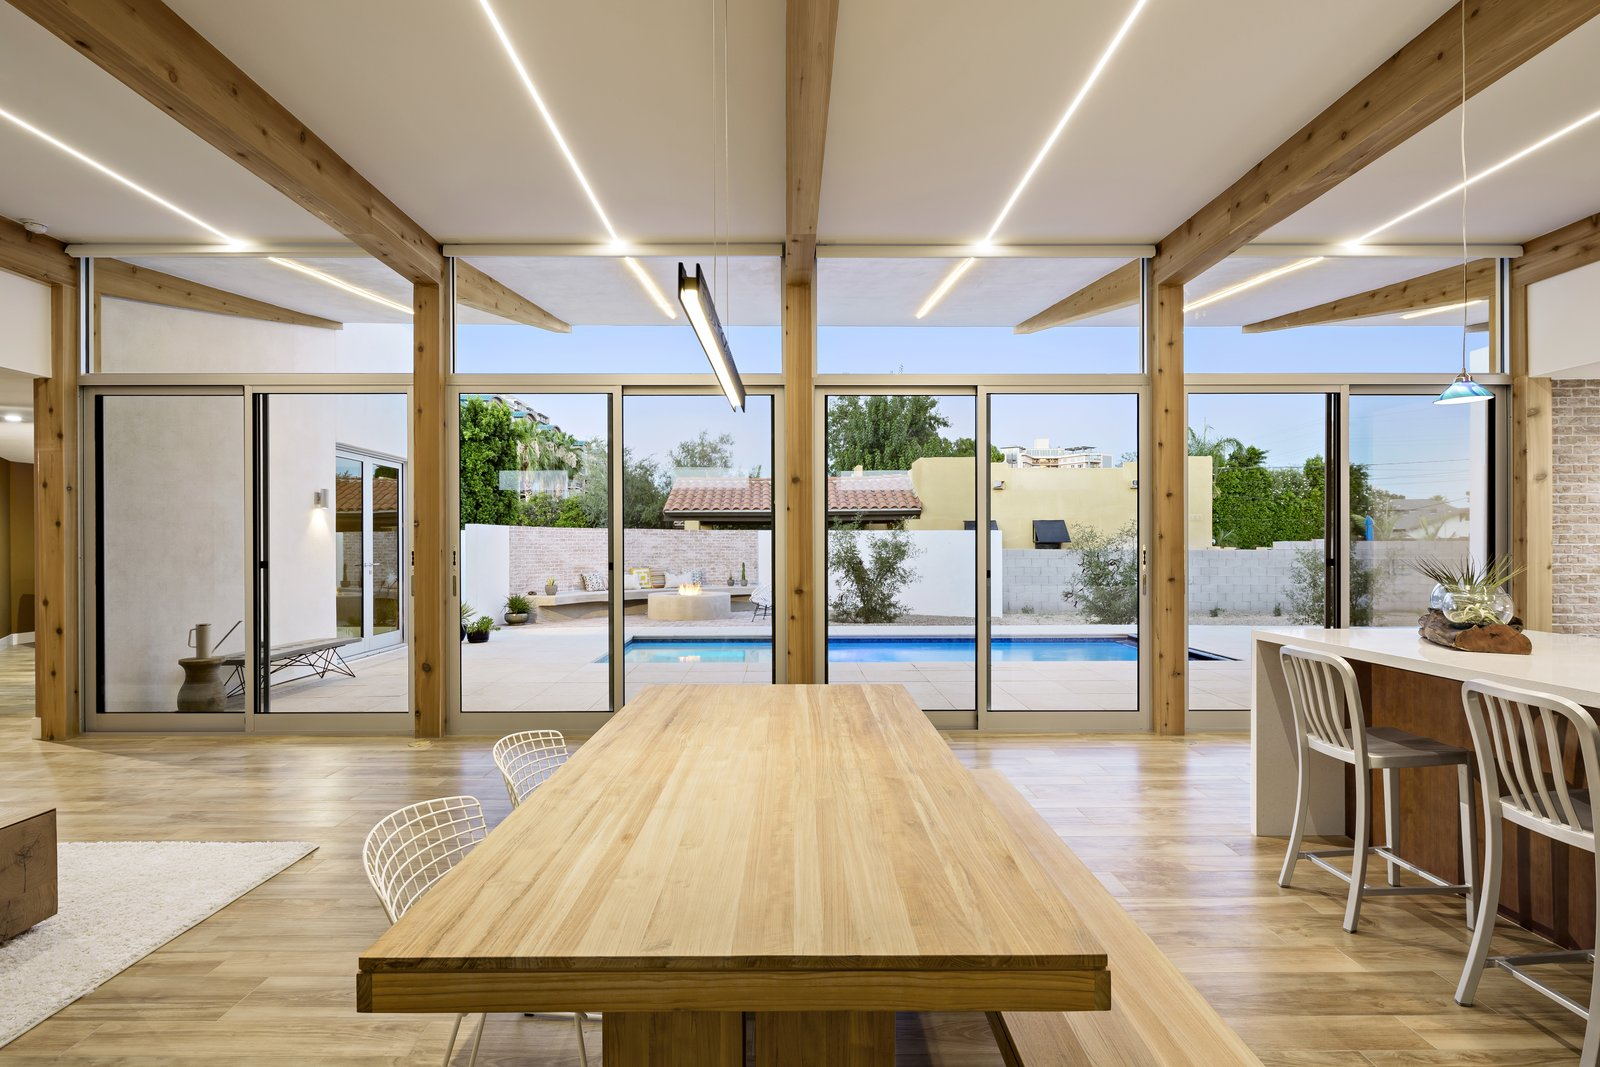 Integrated, dimmable LED lighting provides even light throughout the space and extends to the cantilevered patio outside. Tagged: Dining Room, Table, Bench, Chair, Ceiling Lighting, and Porcelain Tile Floor.  Sol House by The Ranch Mine